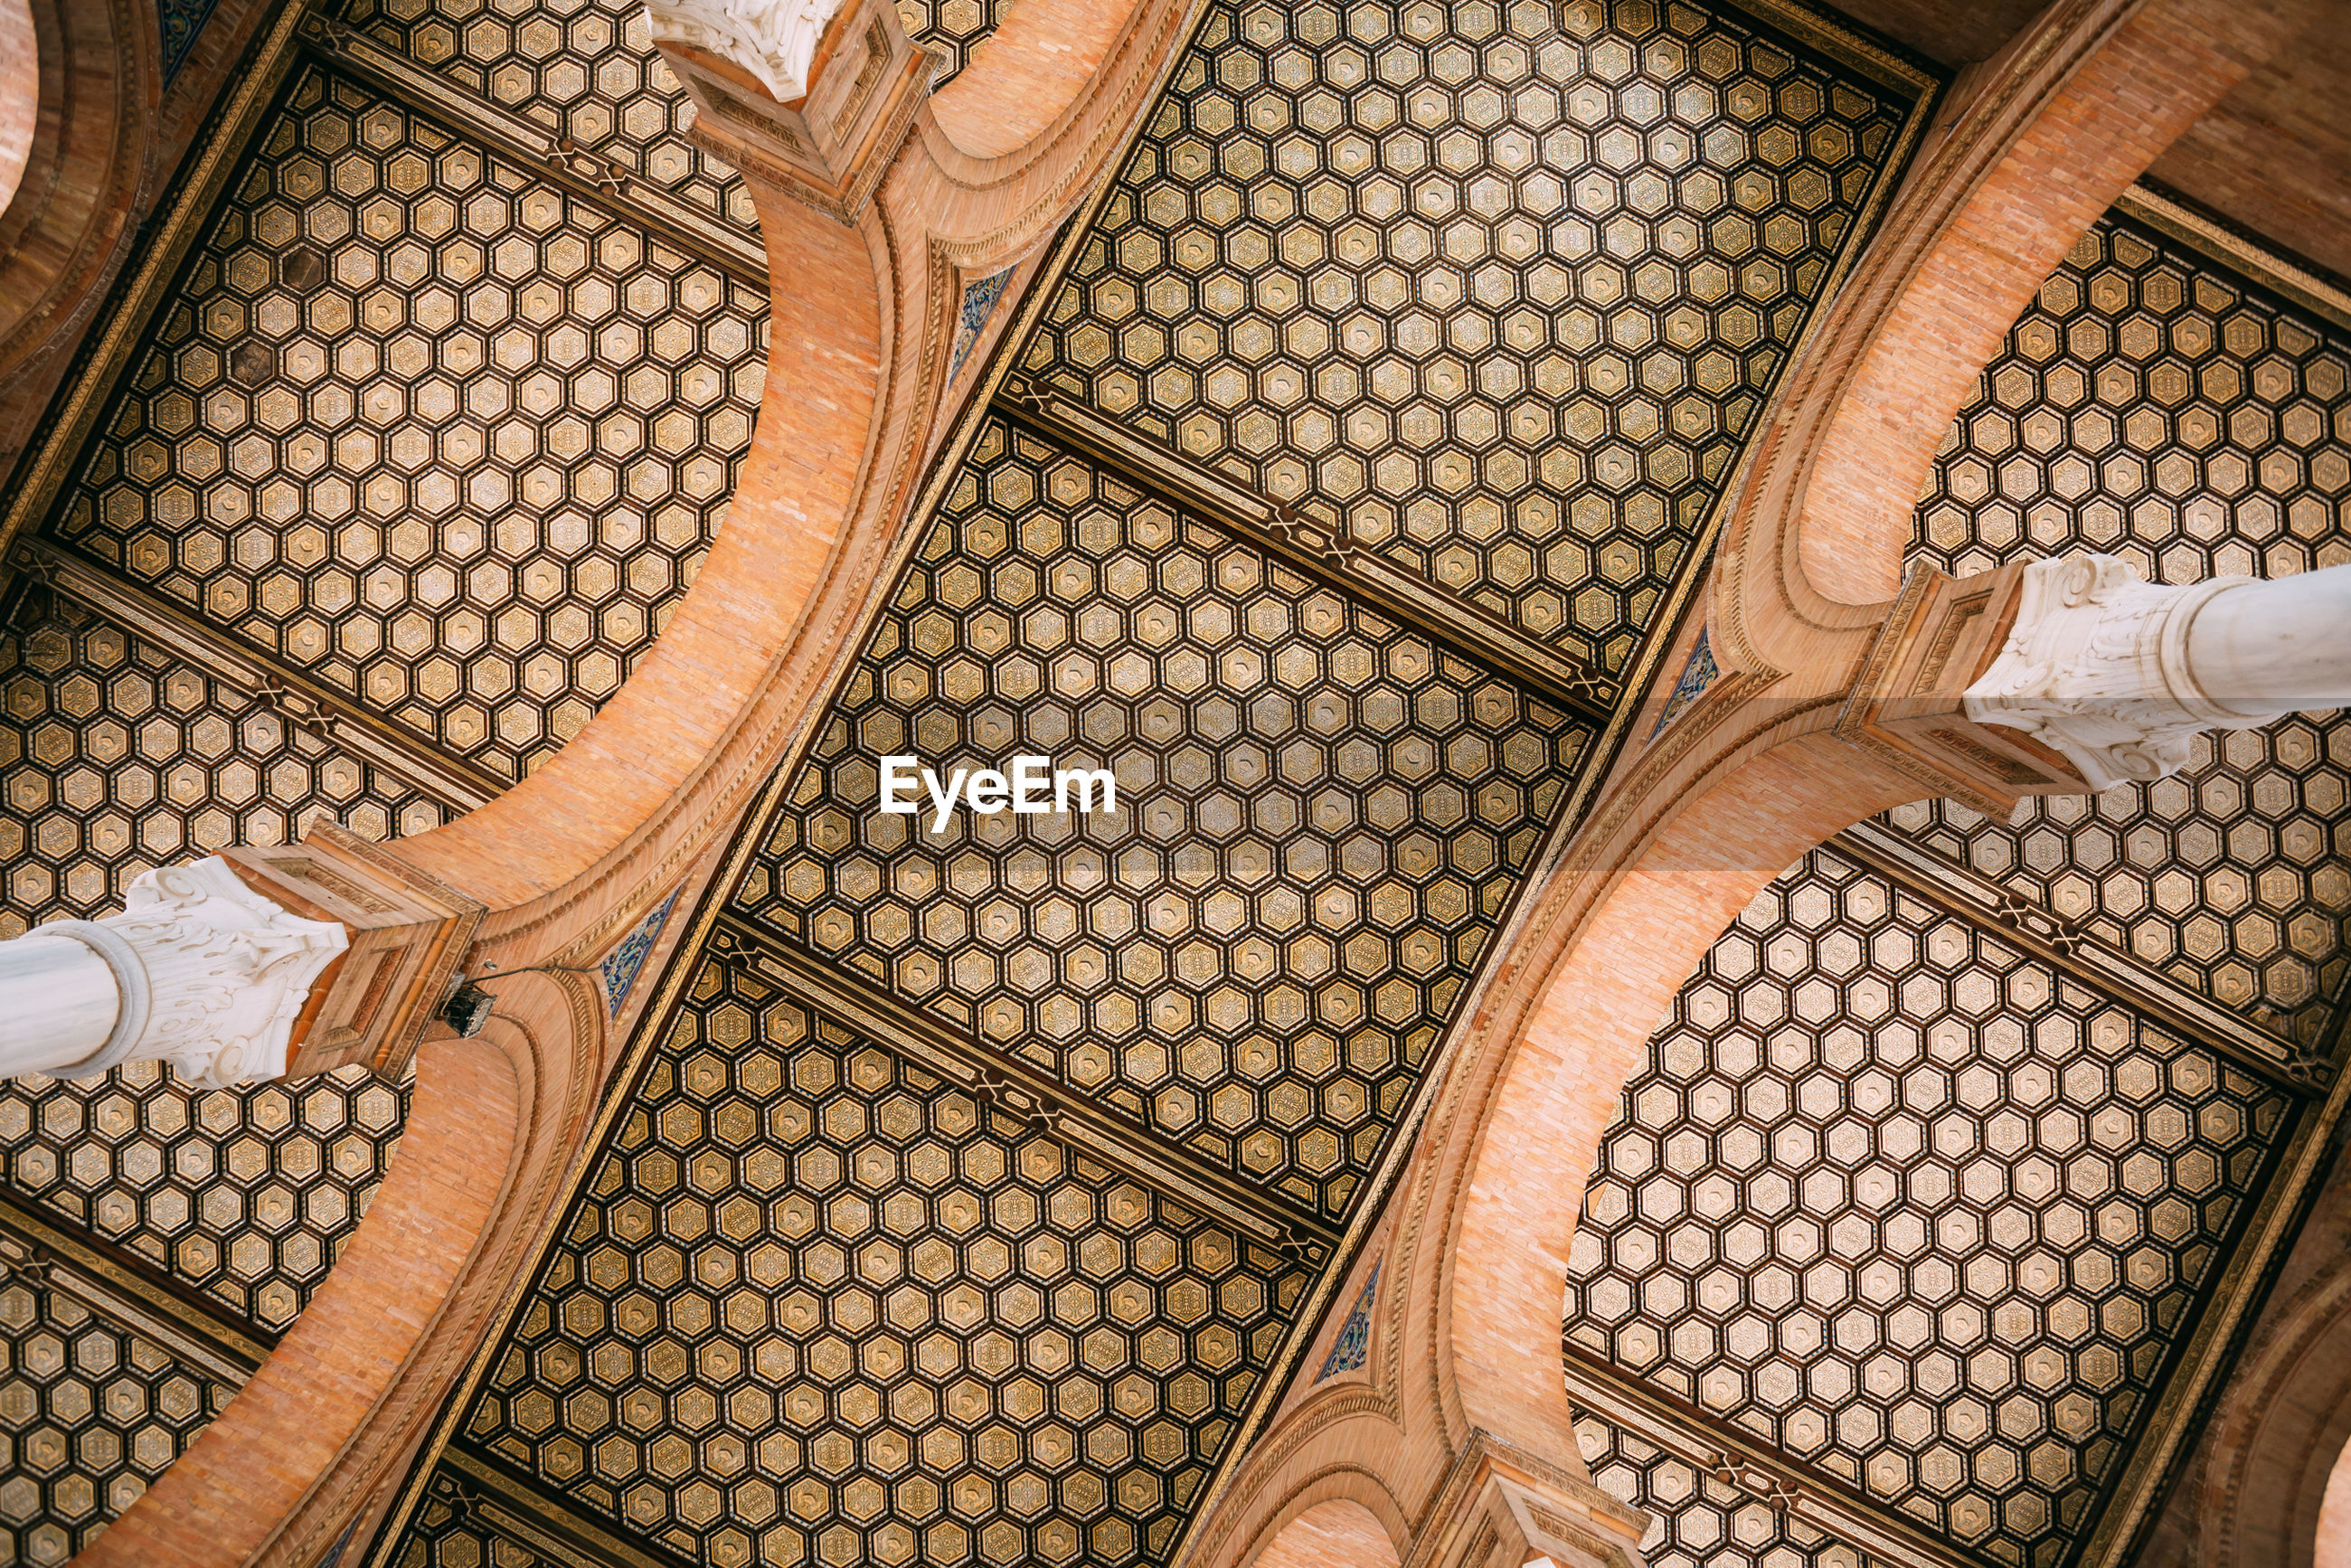 HIGH ANGLE VIEW OF WICKER BASKET IN BUILDING